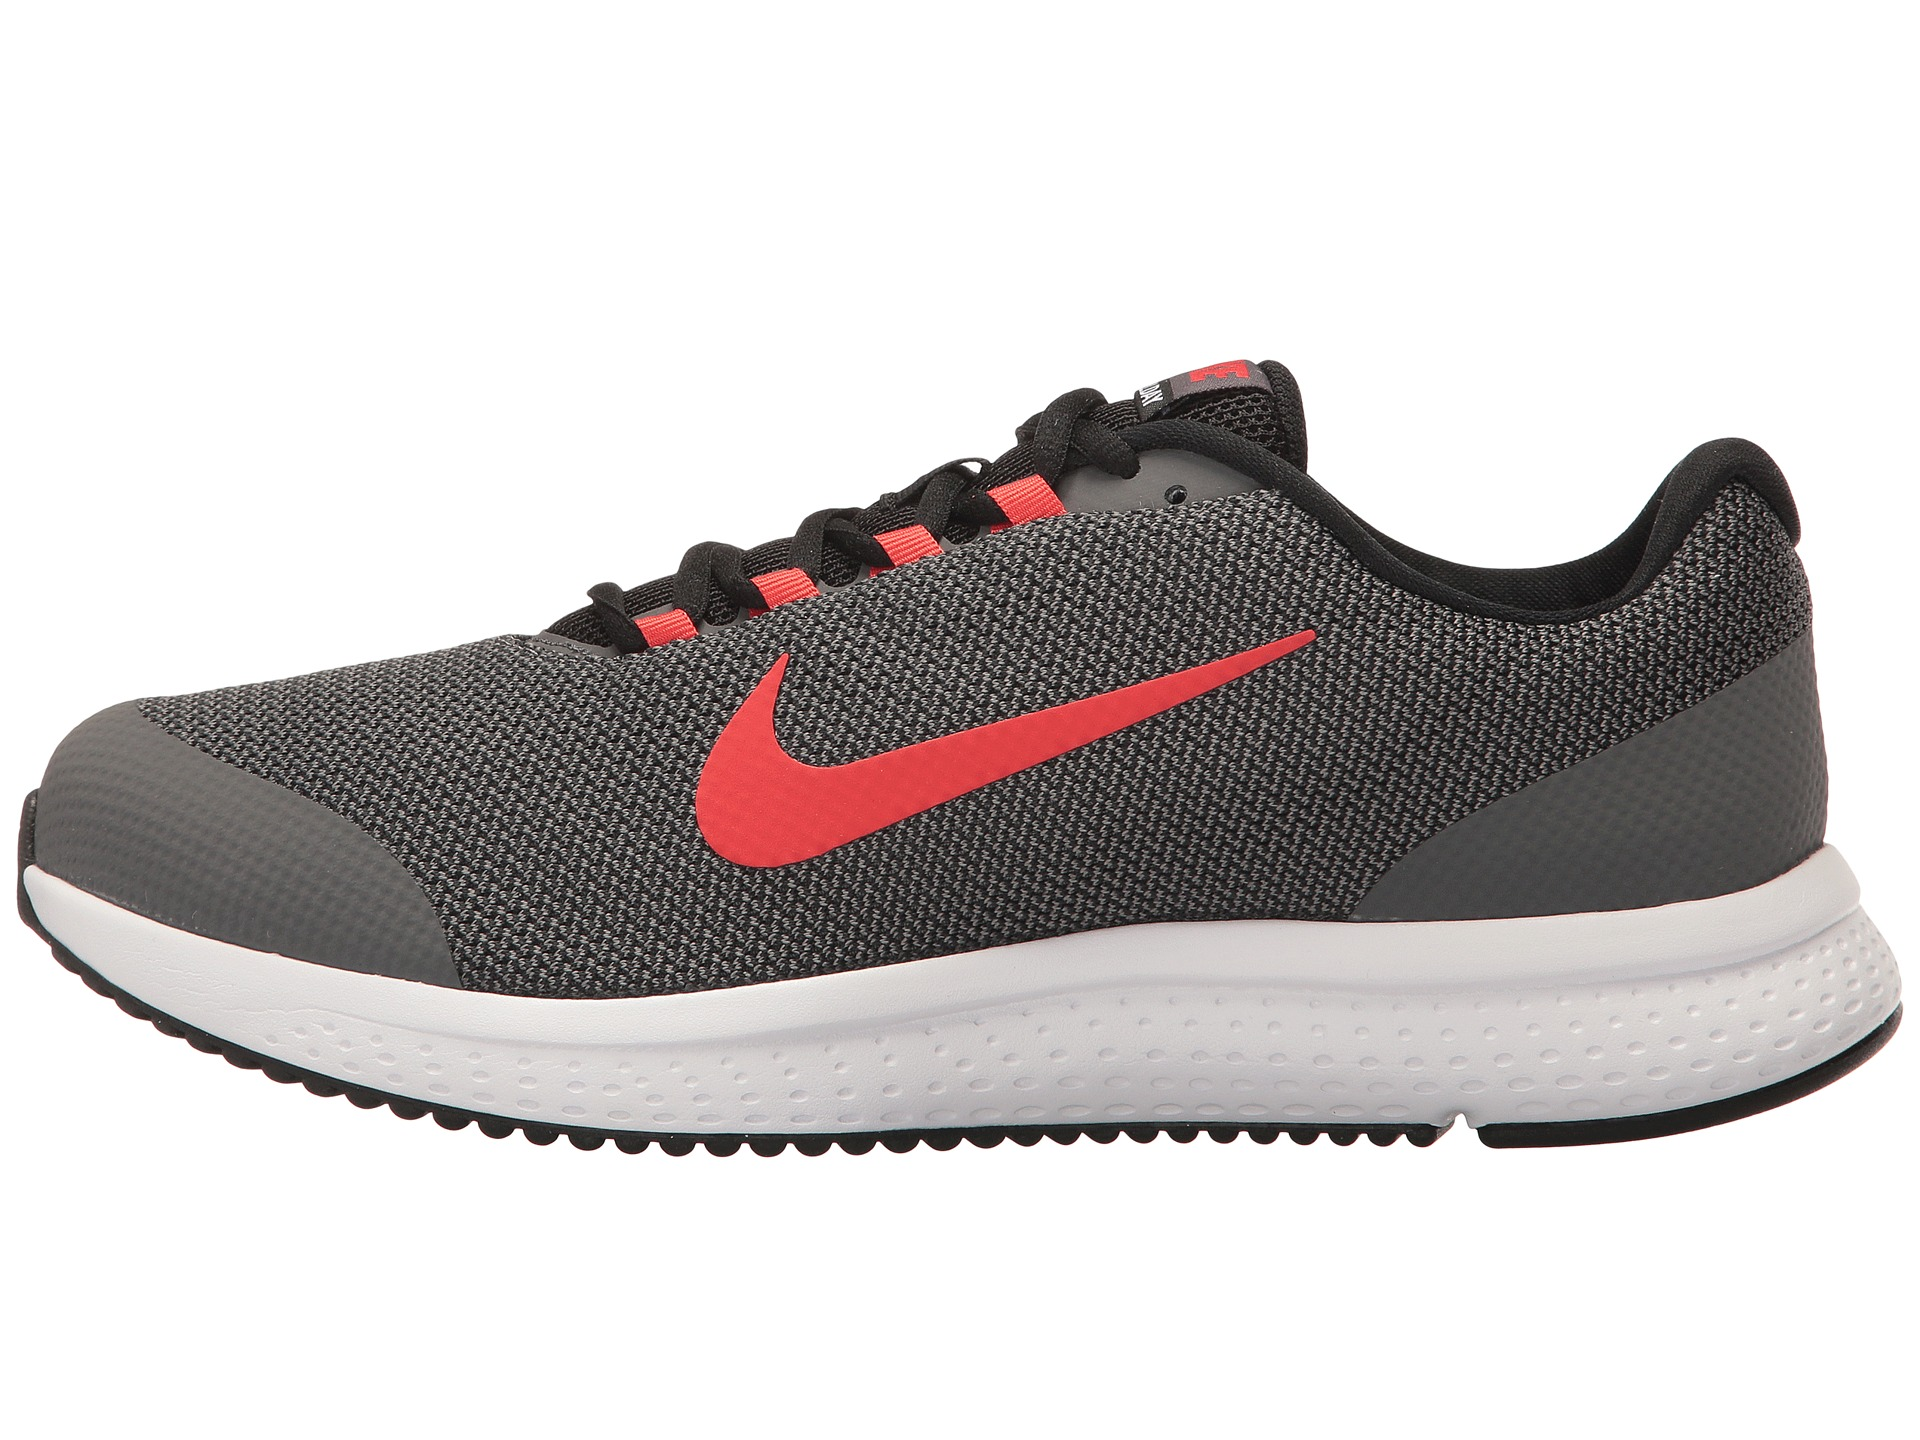 Girls Black Nike Shoes With Arch Support Size